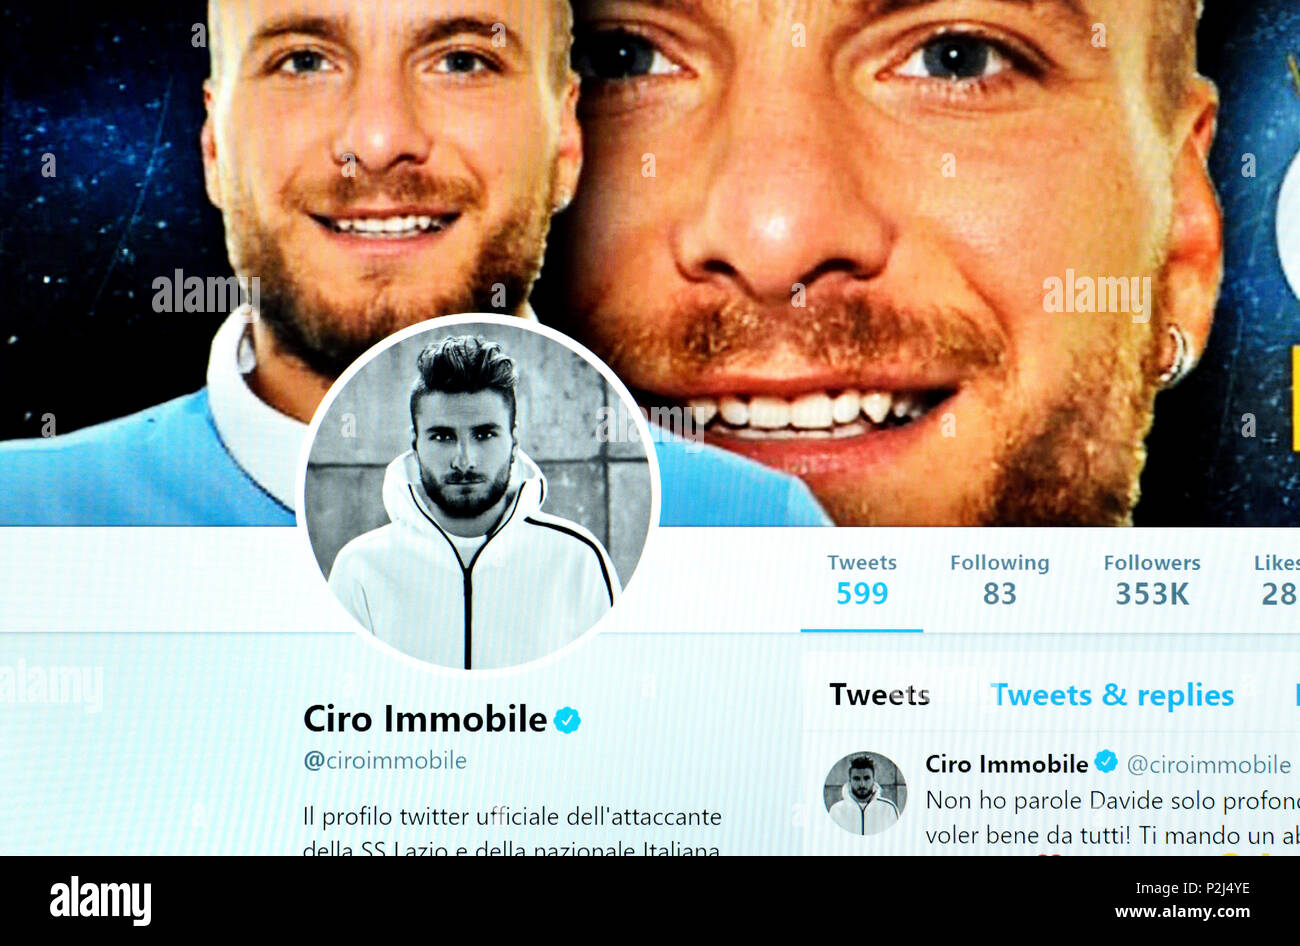 Ciro Immobil official Twitter page (2018) - Stock Image